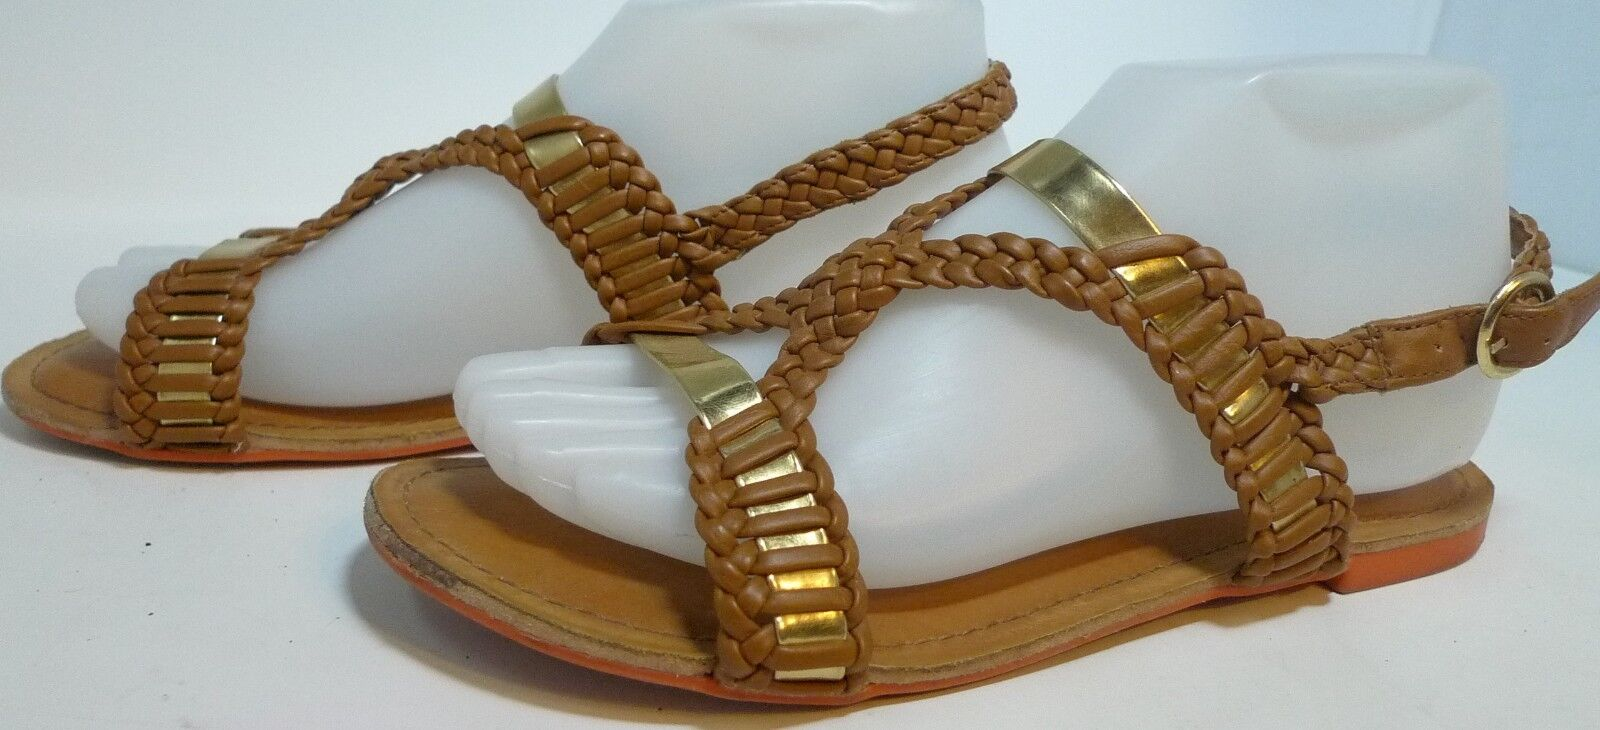 Not Rated Size Womens Sandal Shoe Brown Gold Slingback US Size Rated 7 M NRW1628-251 da8ee0